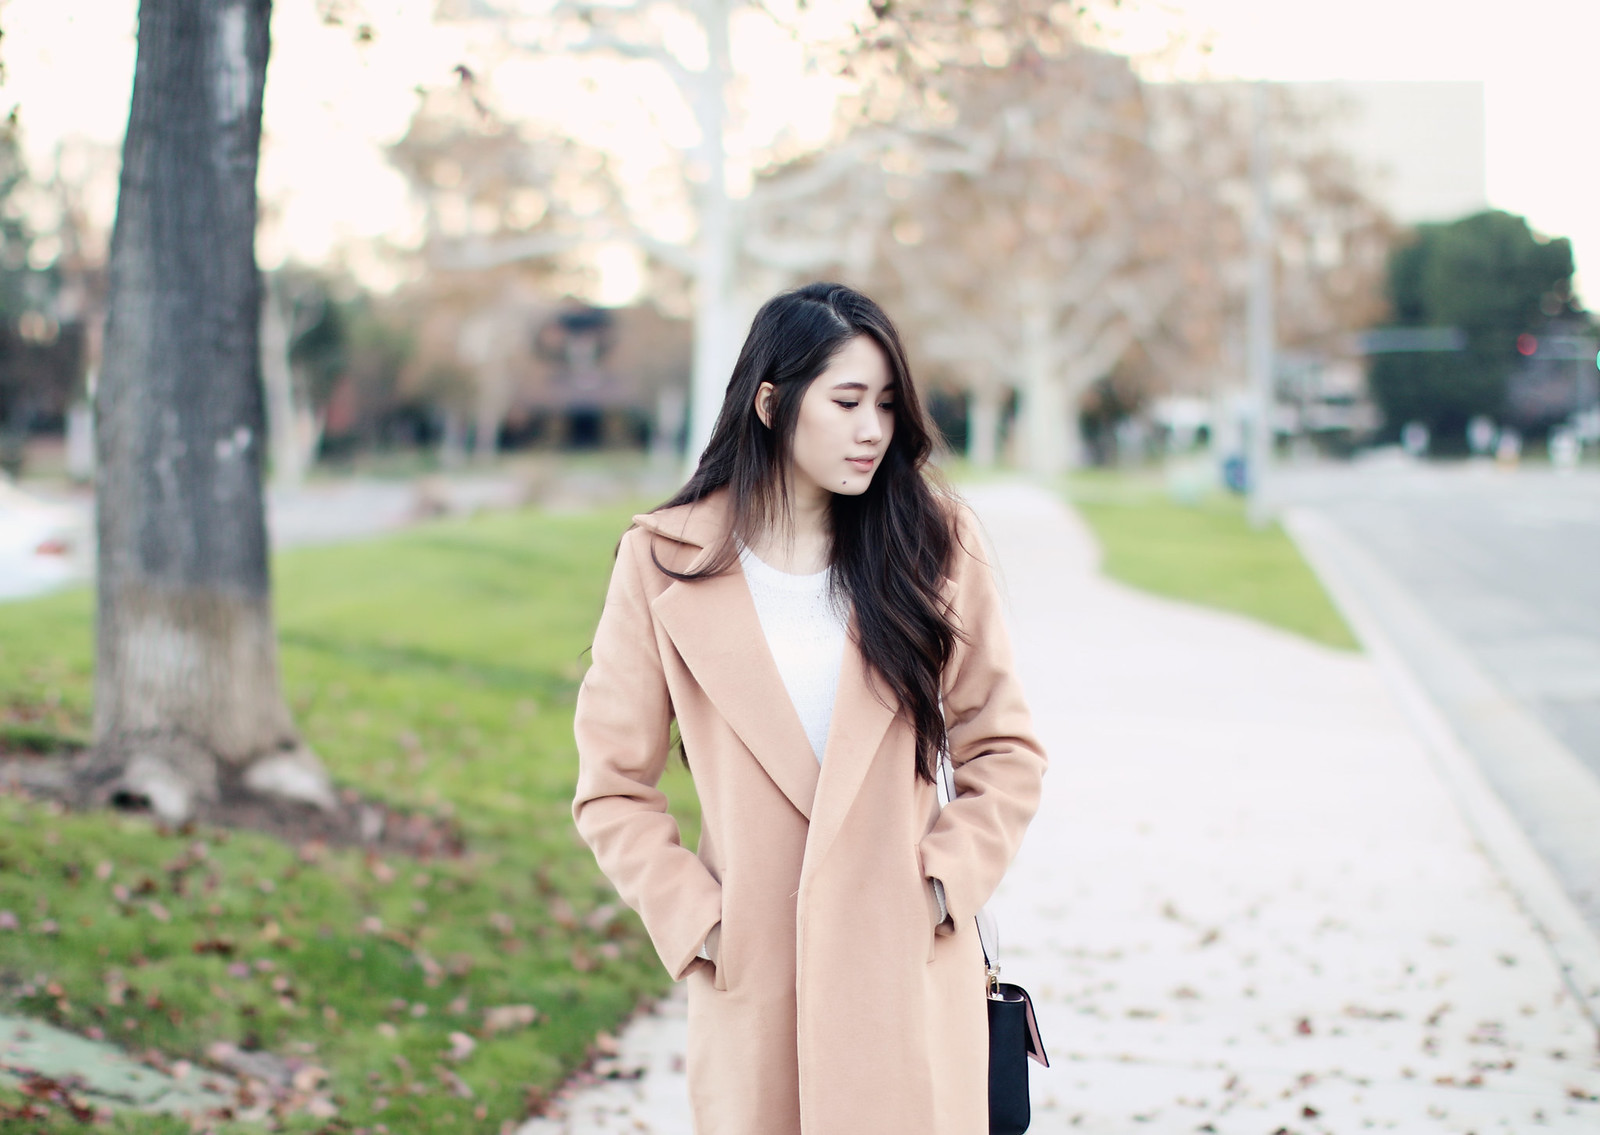 1430-ootd-fashion-fall-autumn-camel-coat-clothestoyouuu-elizabeeetht-chic-classic-timeless-koreanfashion